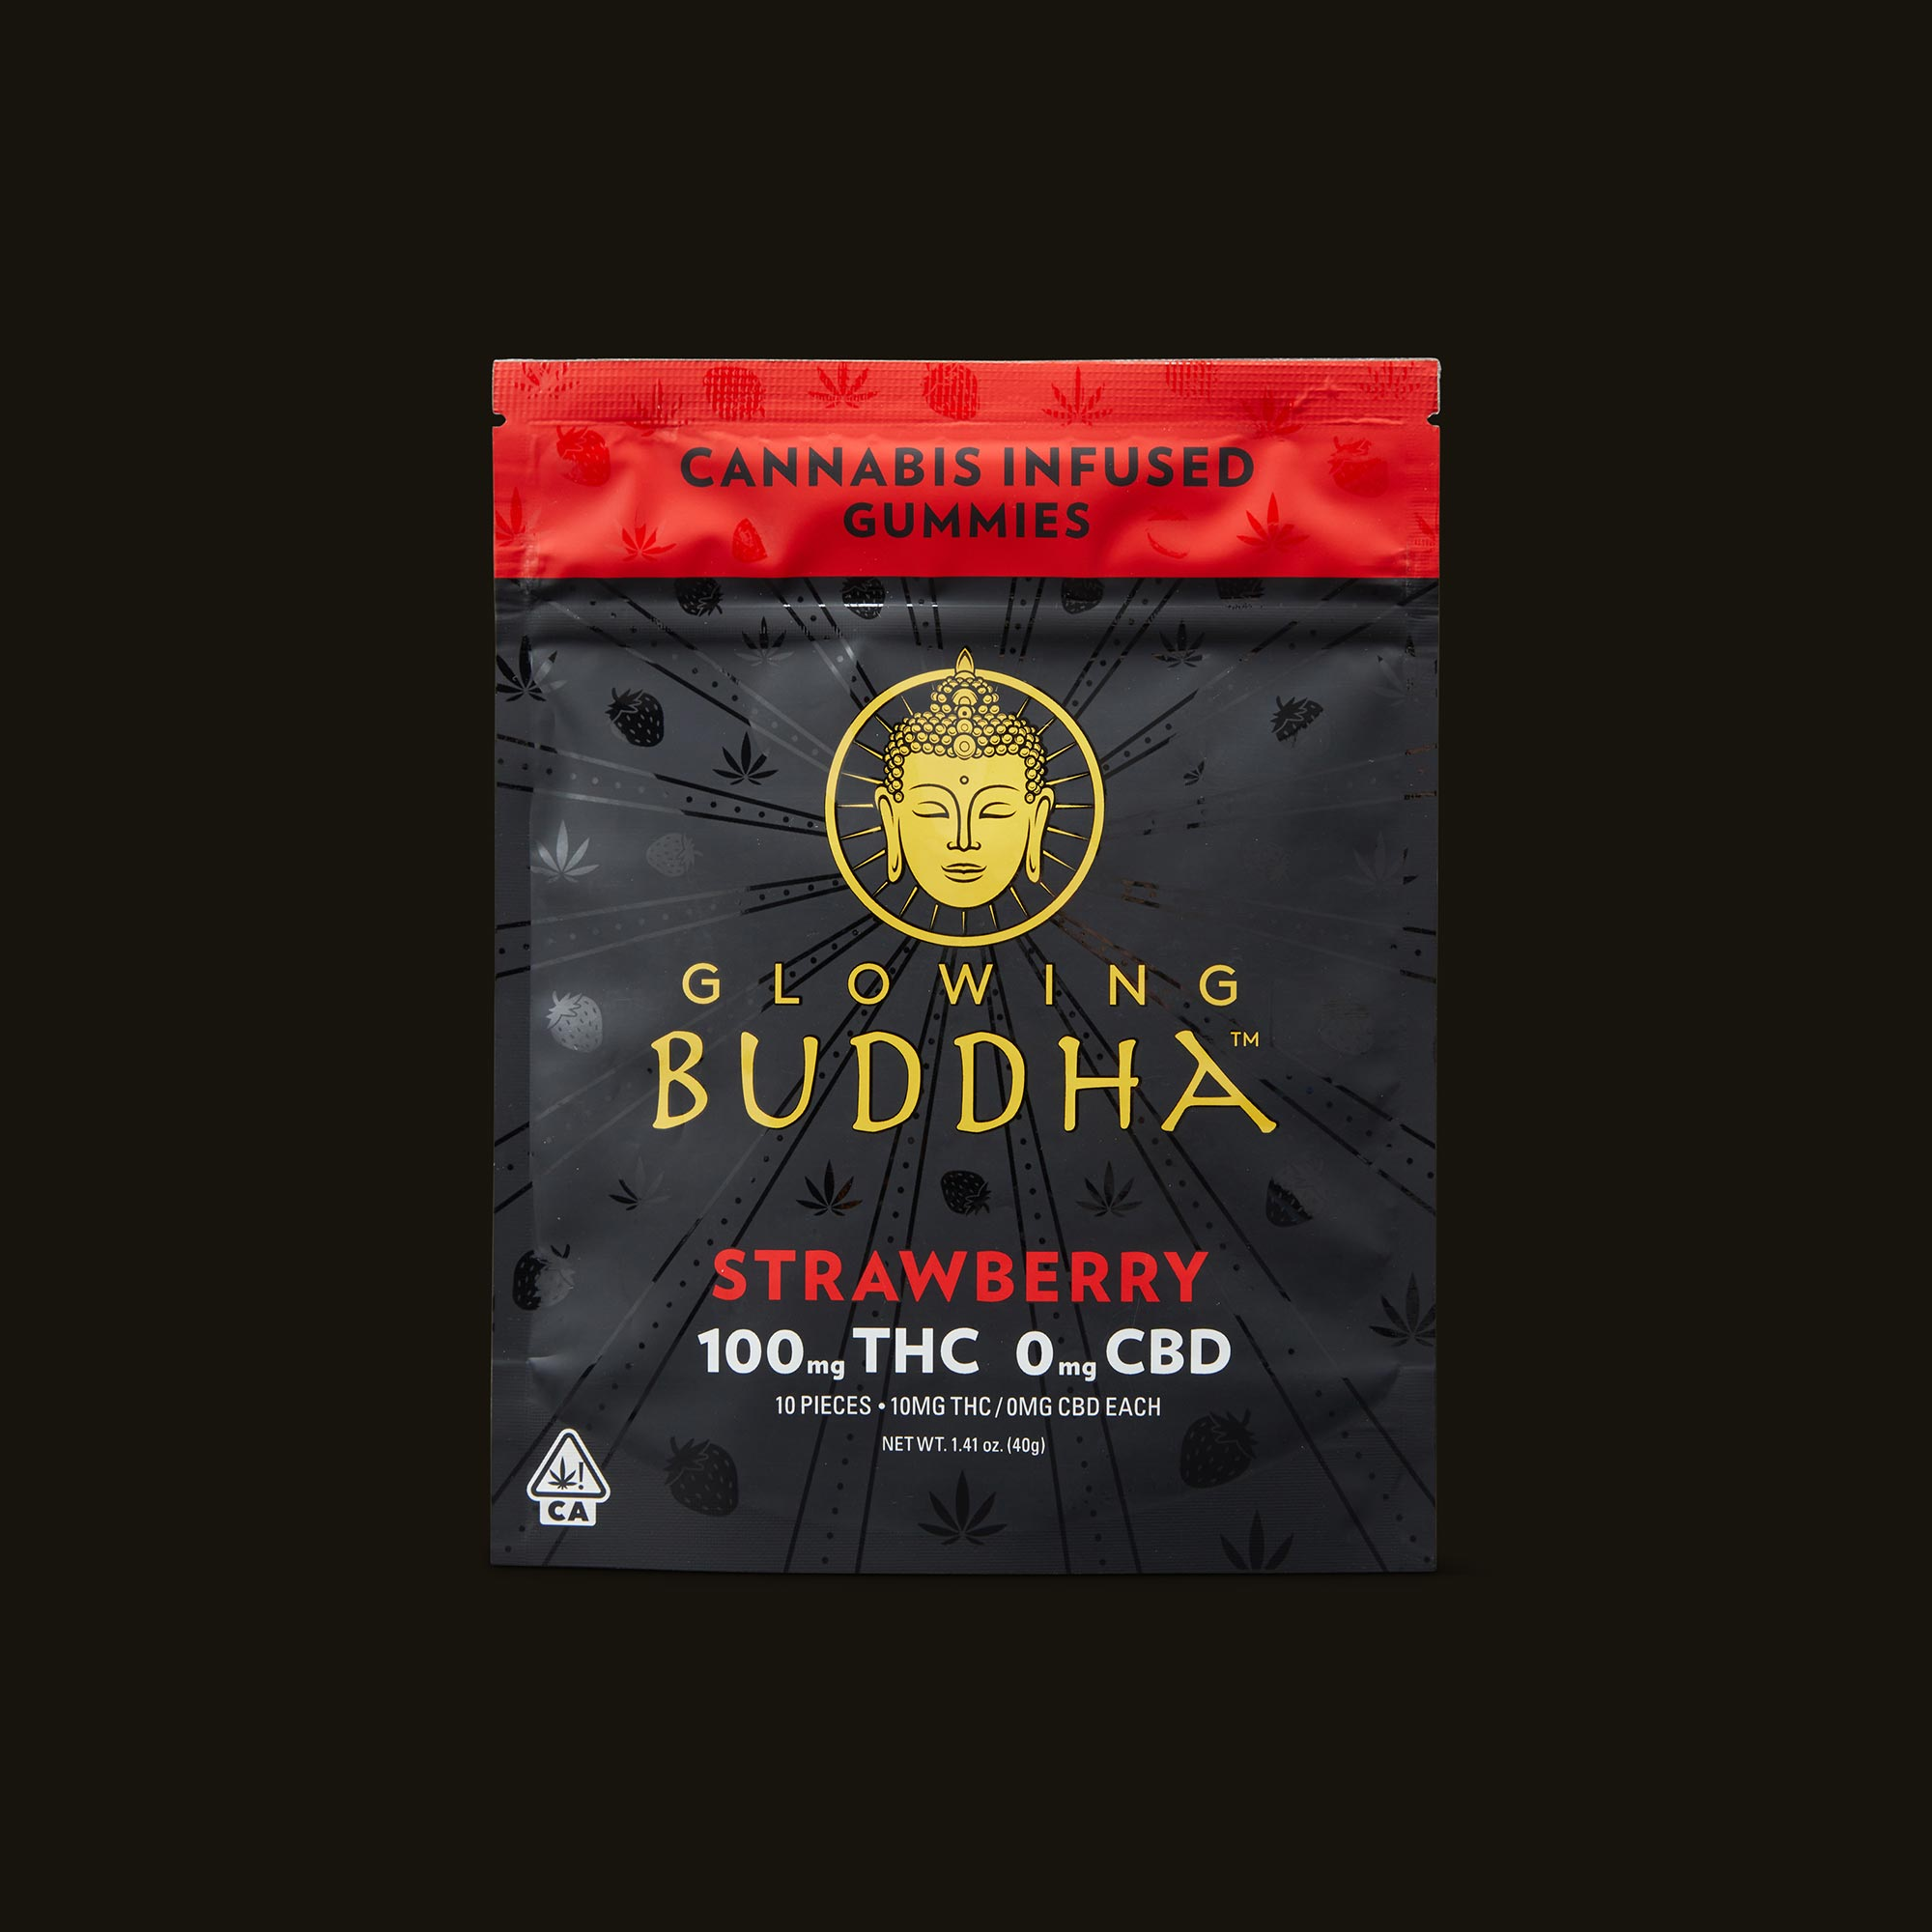 Glowing Buddha Strawberry Gummies Front Packaging